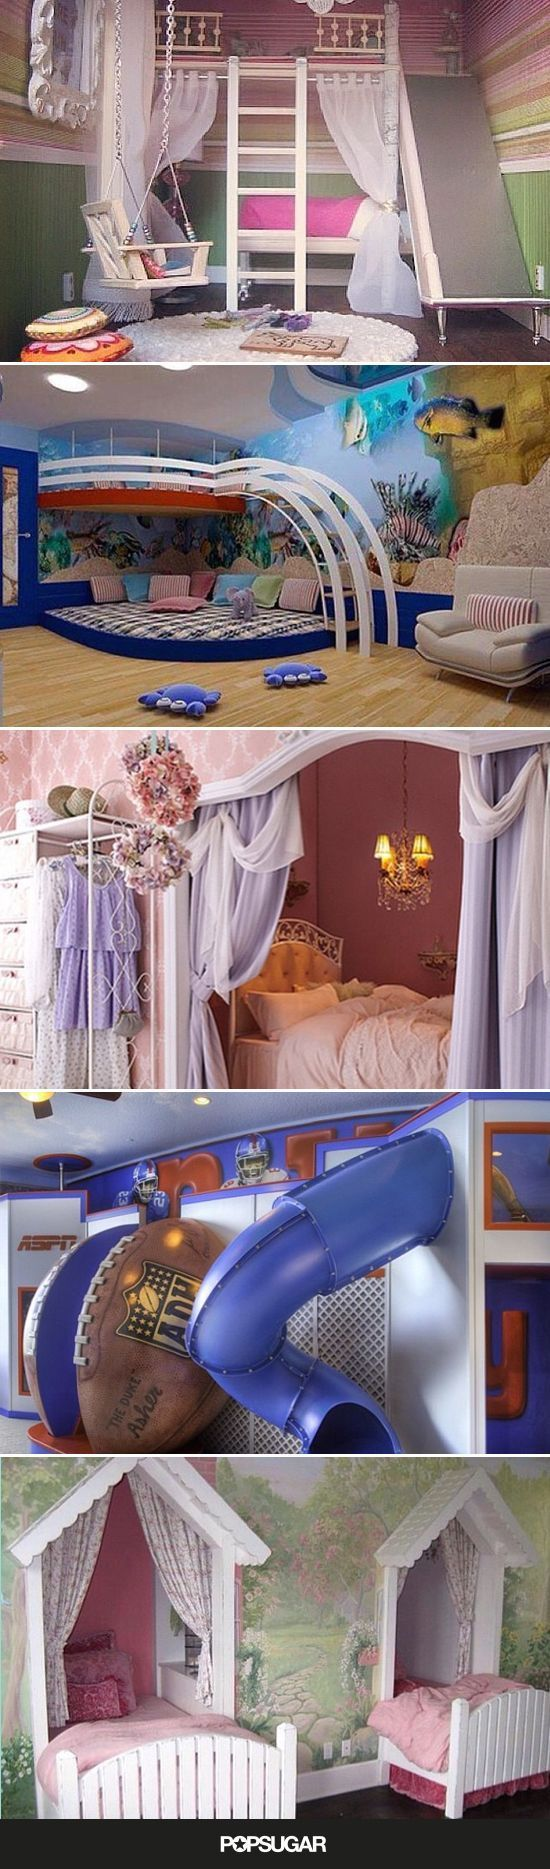 These 26 Crazy Kids  Rooms Will Make You Want to Redecorate Immediately. 25  unique Kids rooms decor ideas on Pinterest   Kids room